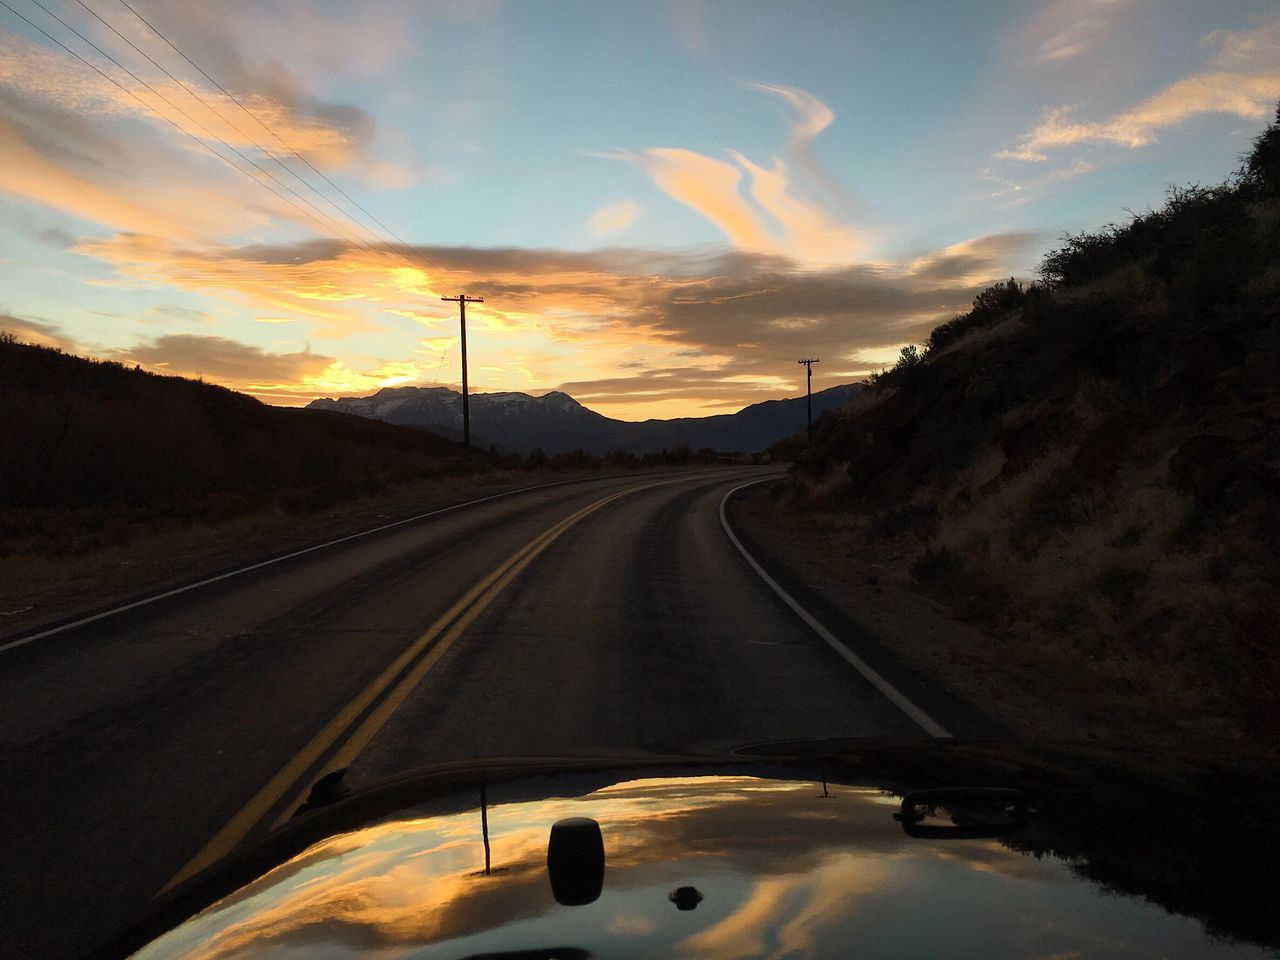 transportation, sky, sunset, cloud - sky, road, land vehicle, no people, car, mode of transportation, the way forward, nature, motor vehicle, direction, diminishing perspective, windshield, beauty in nature, transparent, scenics - nature, vehicle interior, glass - material, outdoors, car point of view, road trip